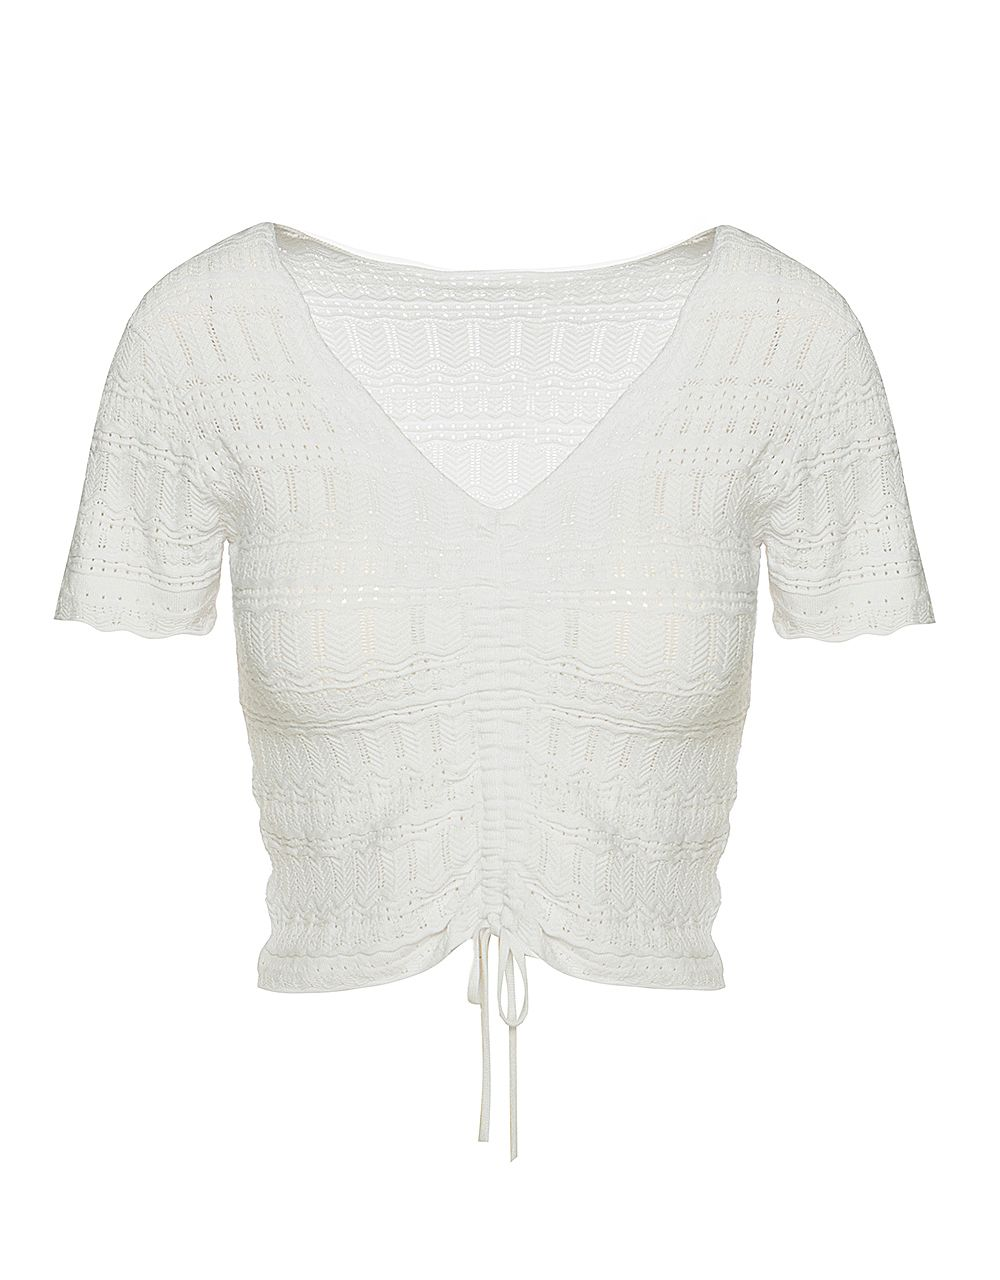 KNIT TOP WITH GATHERED FRONT